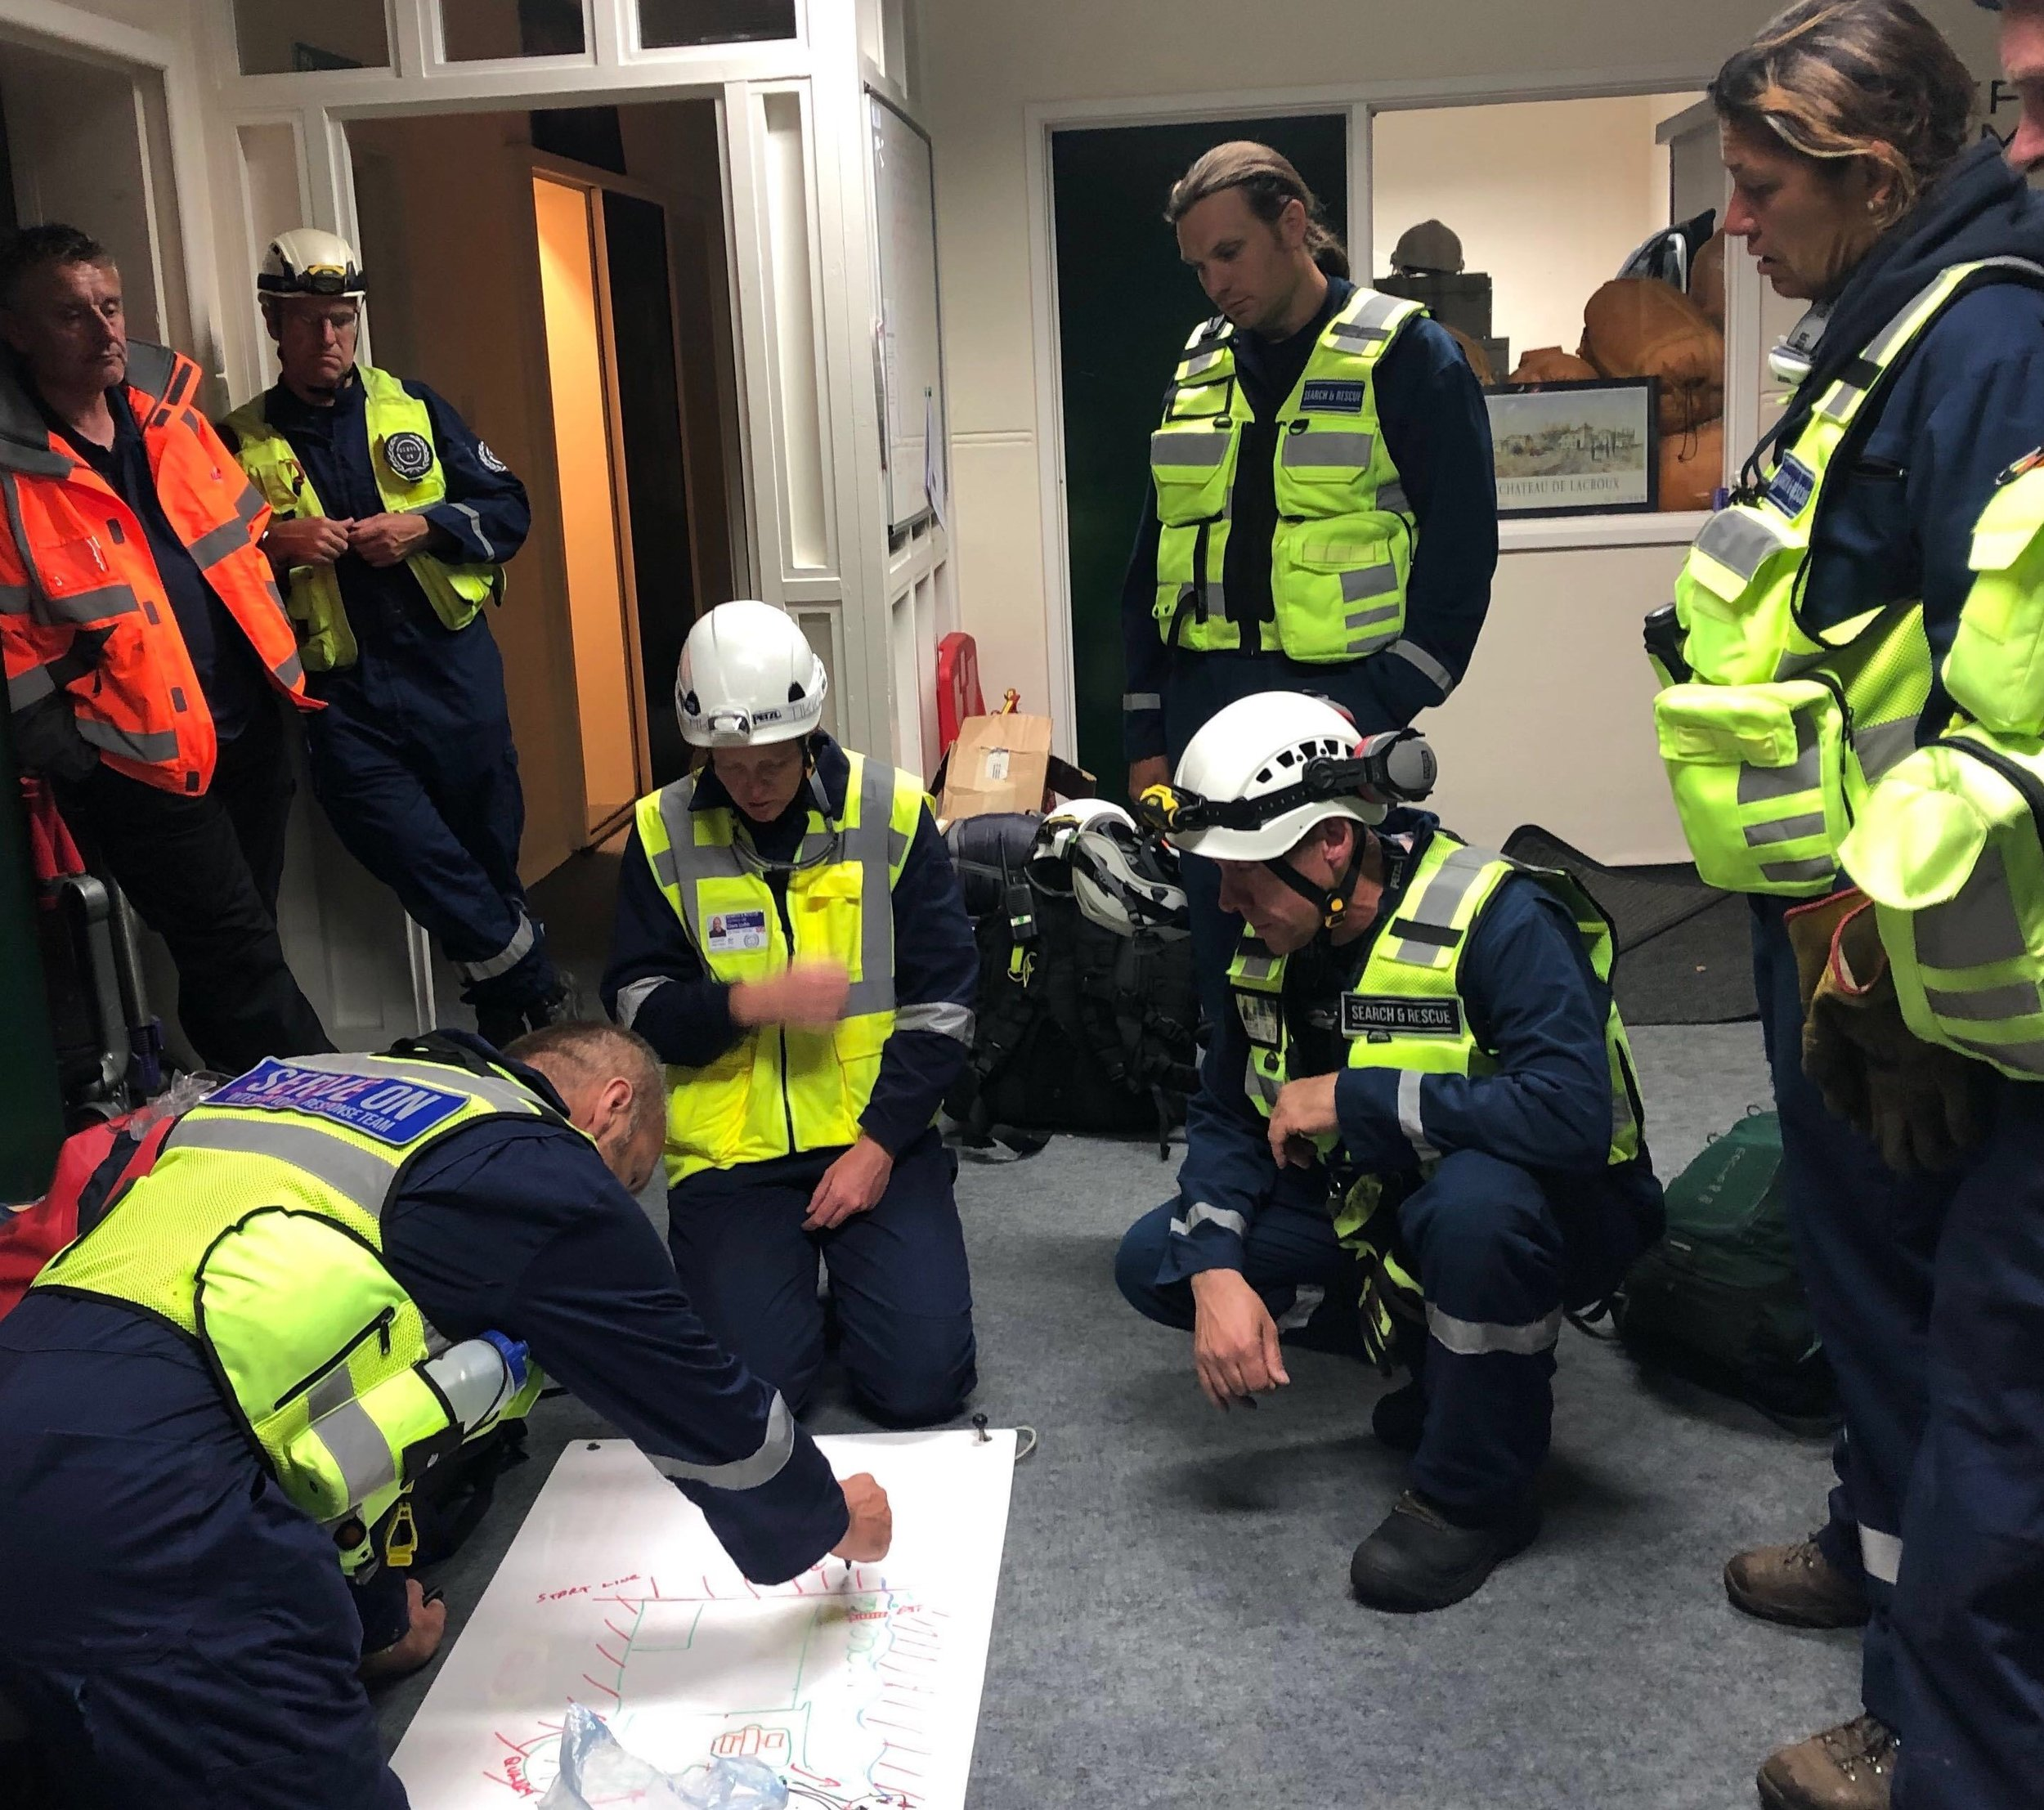 Serve On International Response Team recruits planning their search strategy as they are tasked in the middle of the night with finding a 'missing person'